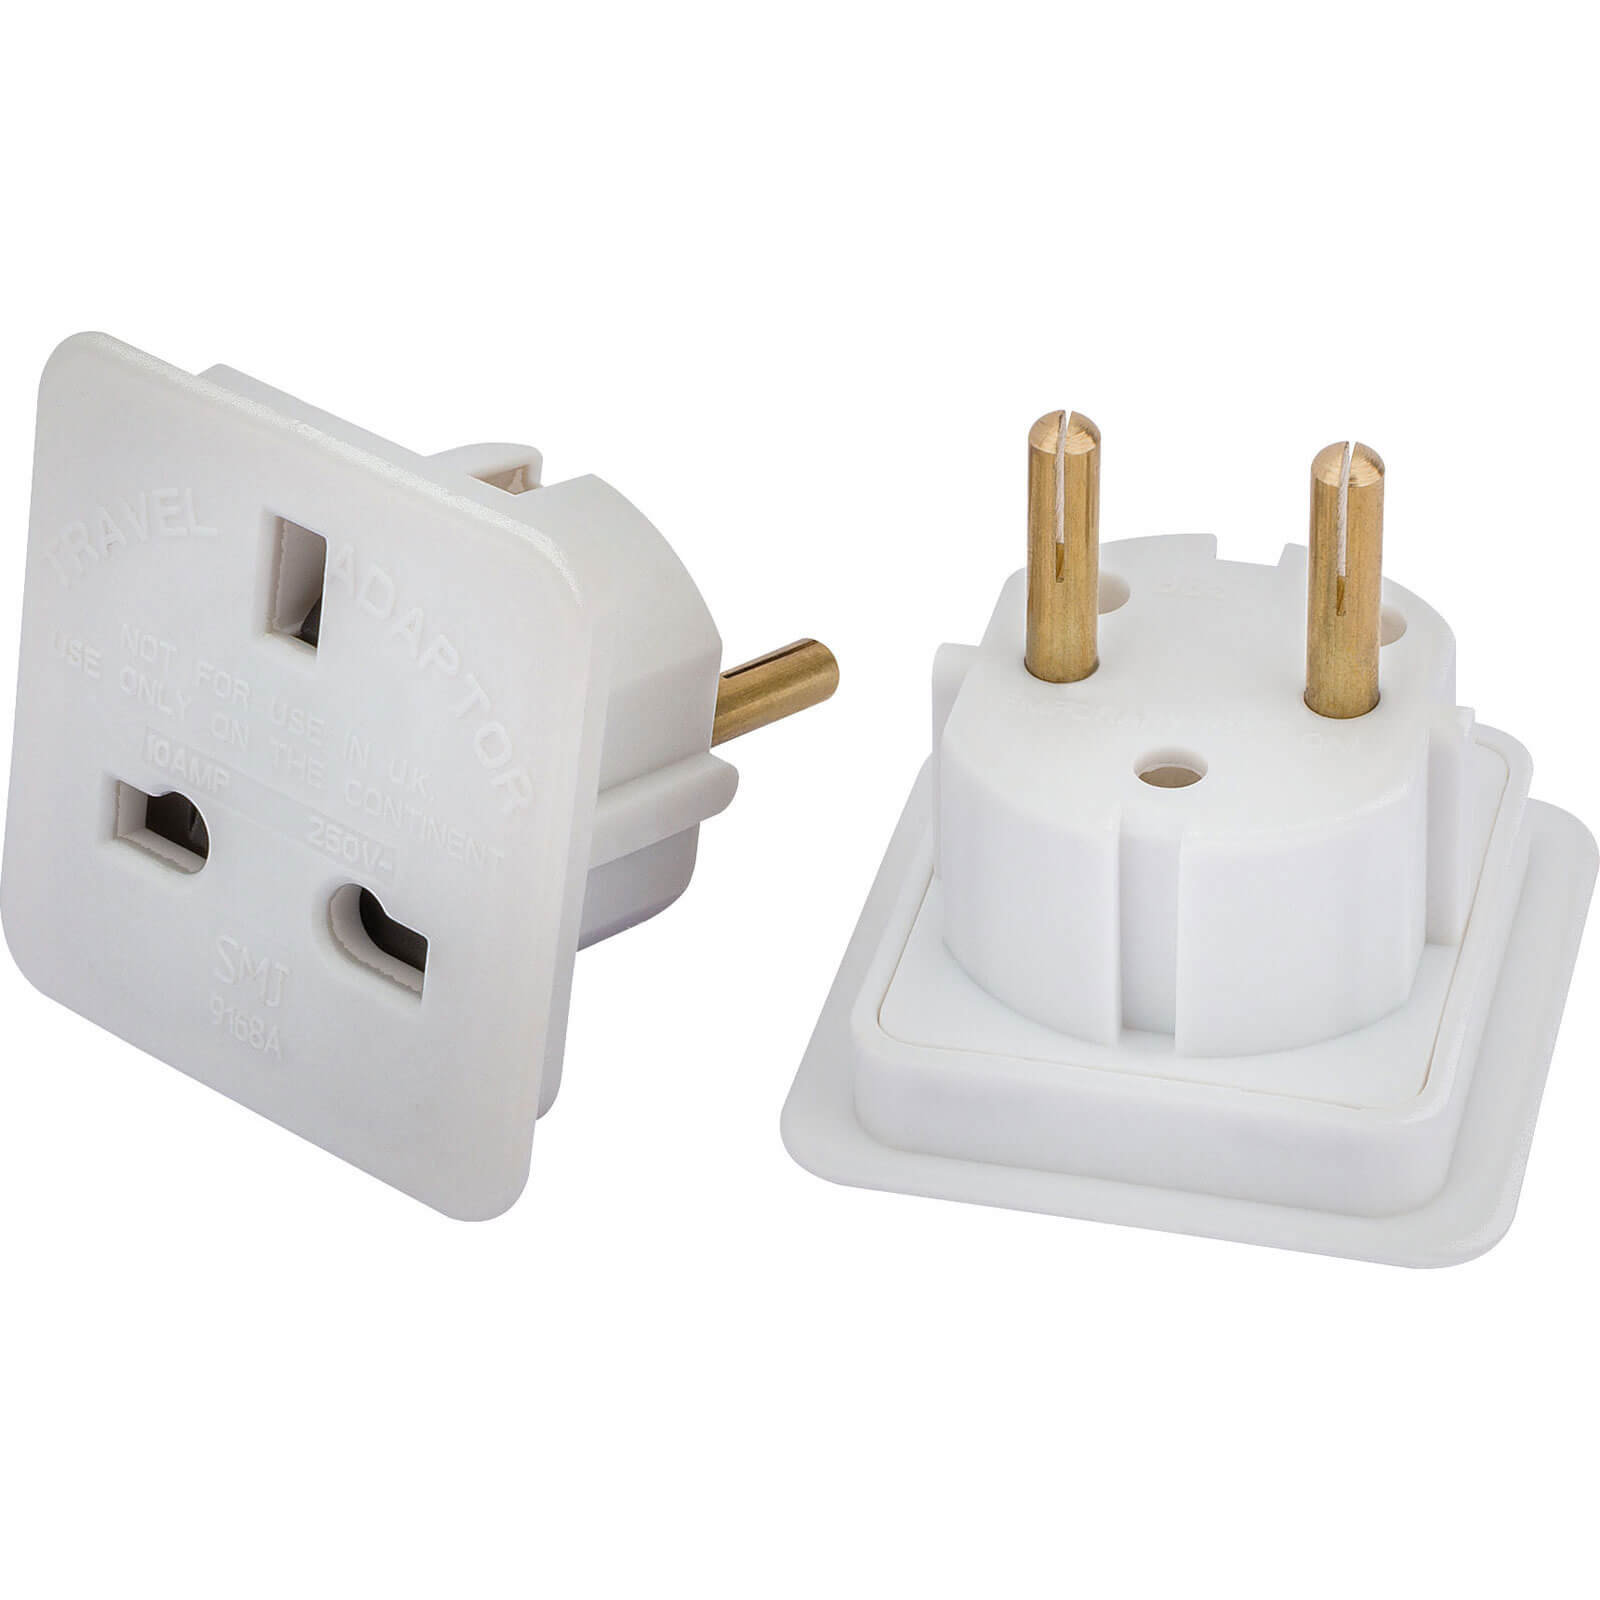 Draper European Travel Adaptors